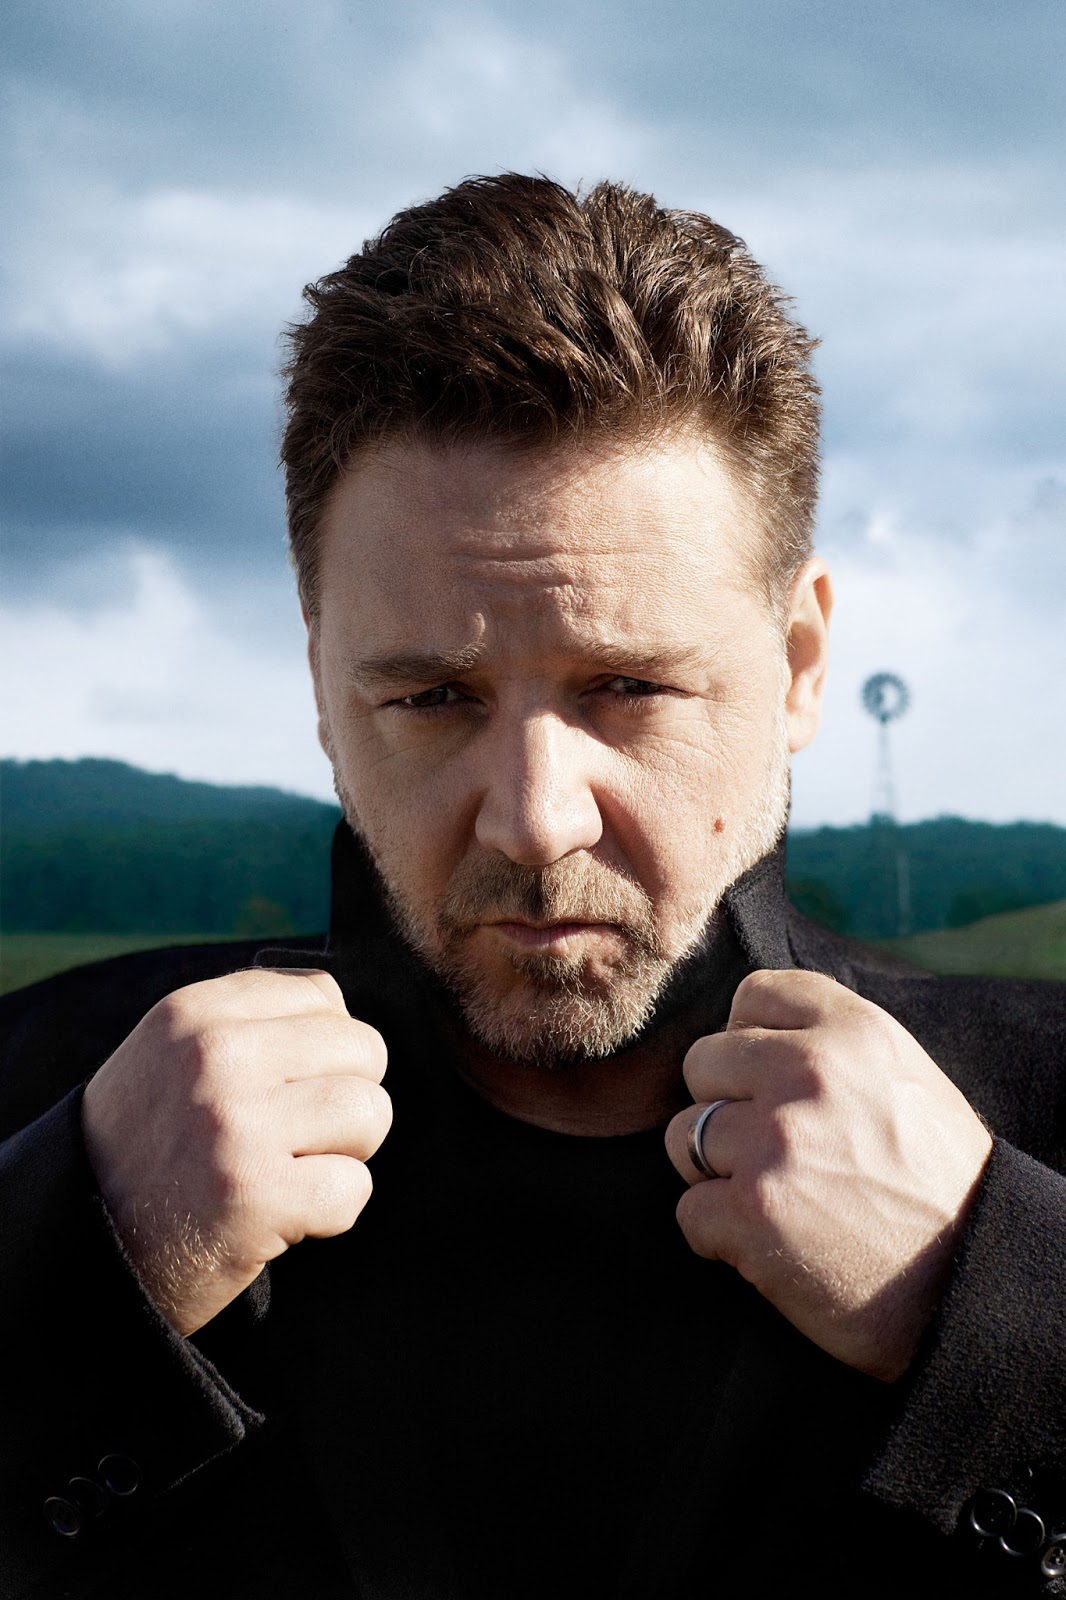 Posted by Smaranda at 3 51 AMRussell Crowe Movies